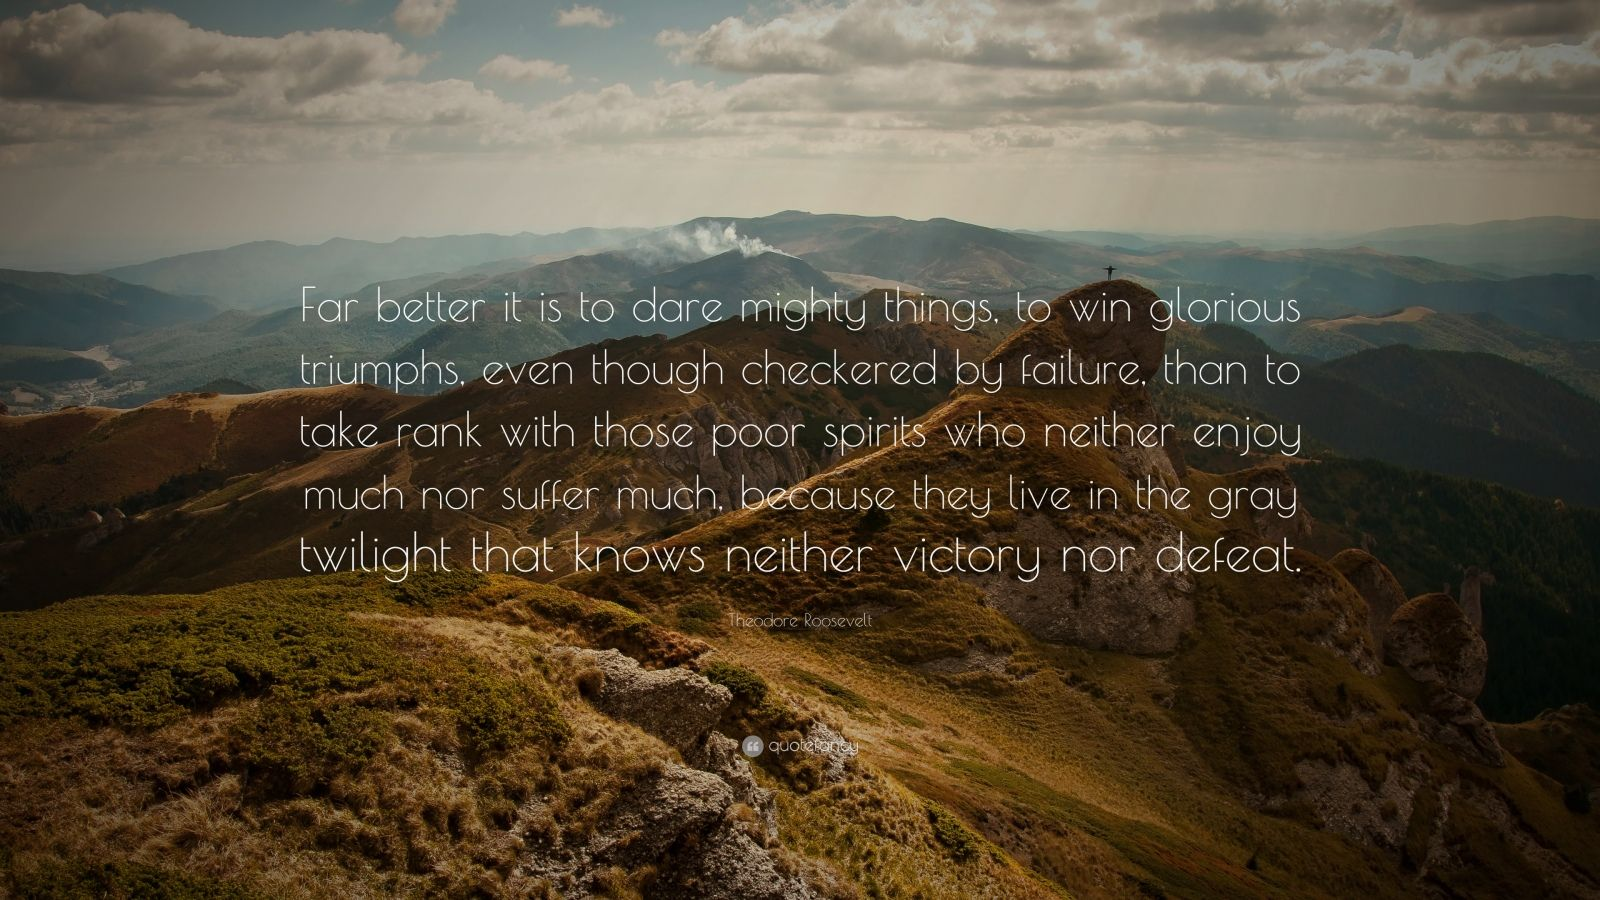 Theodore Roosevelt Quotes (100 Wallpapers)